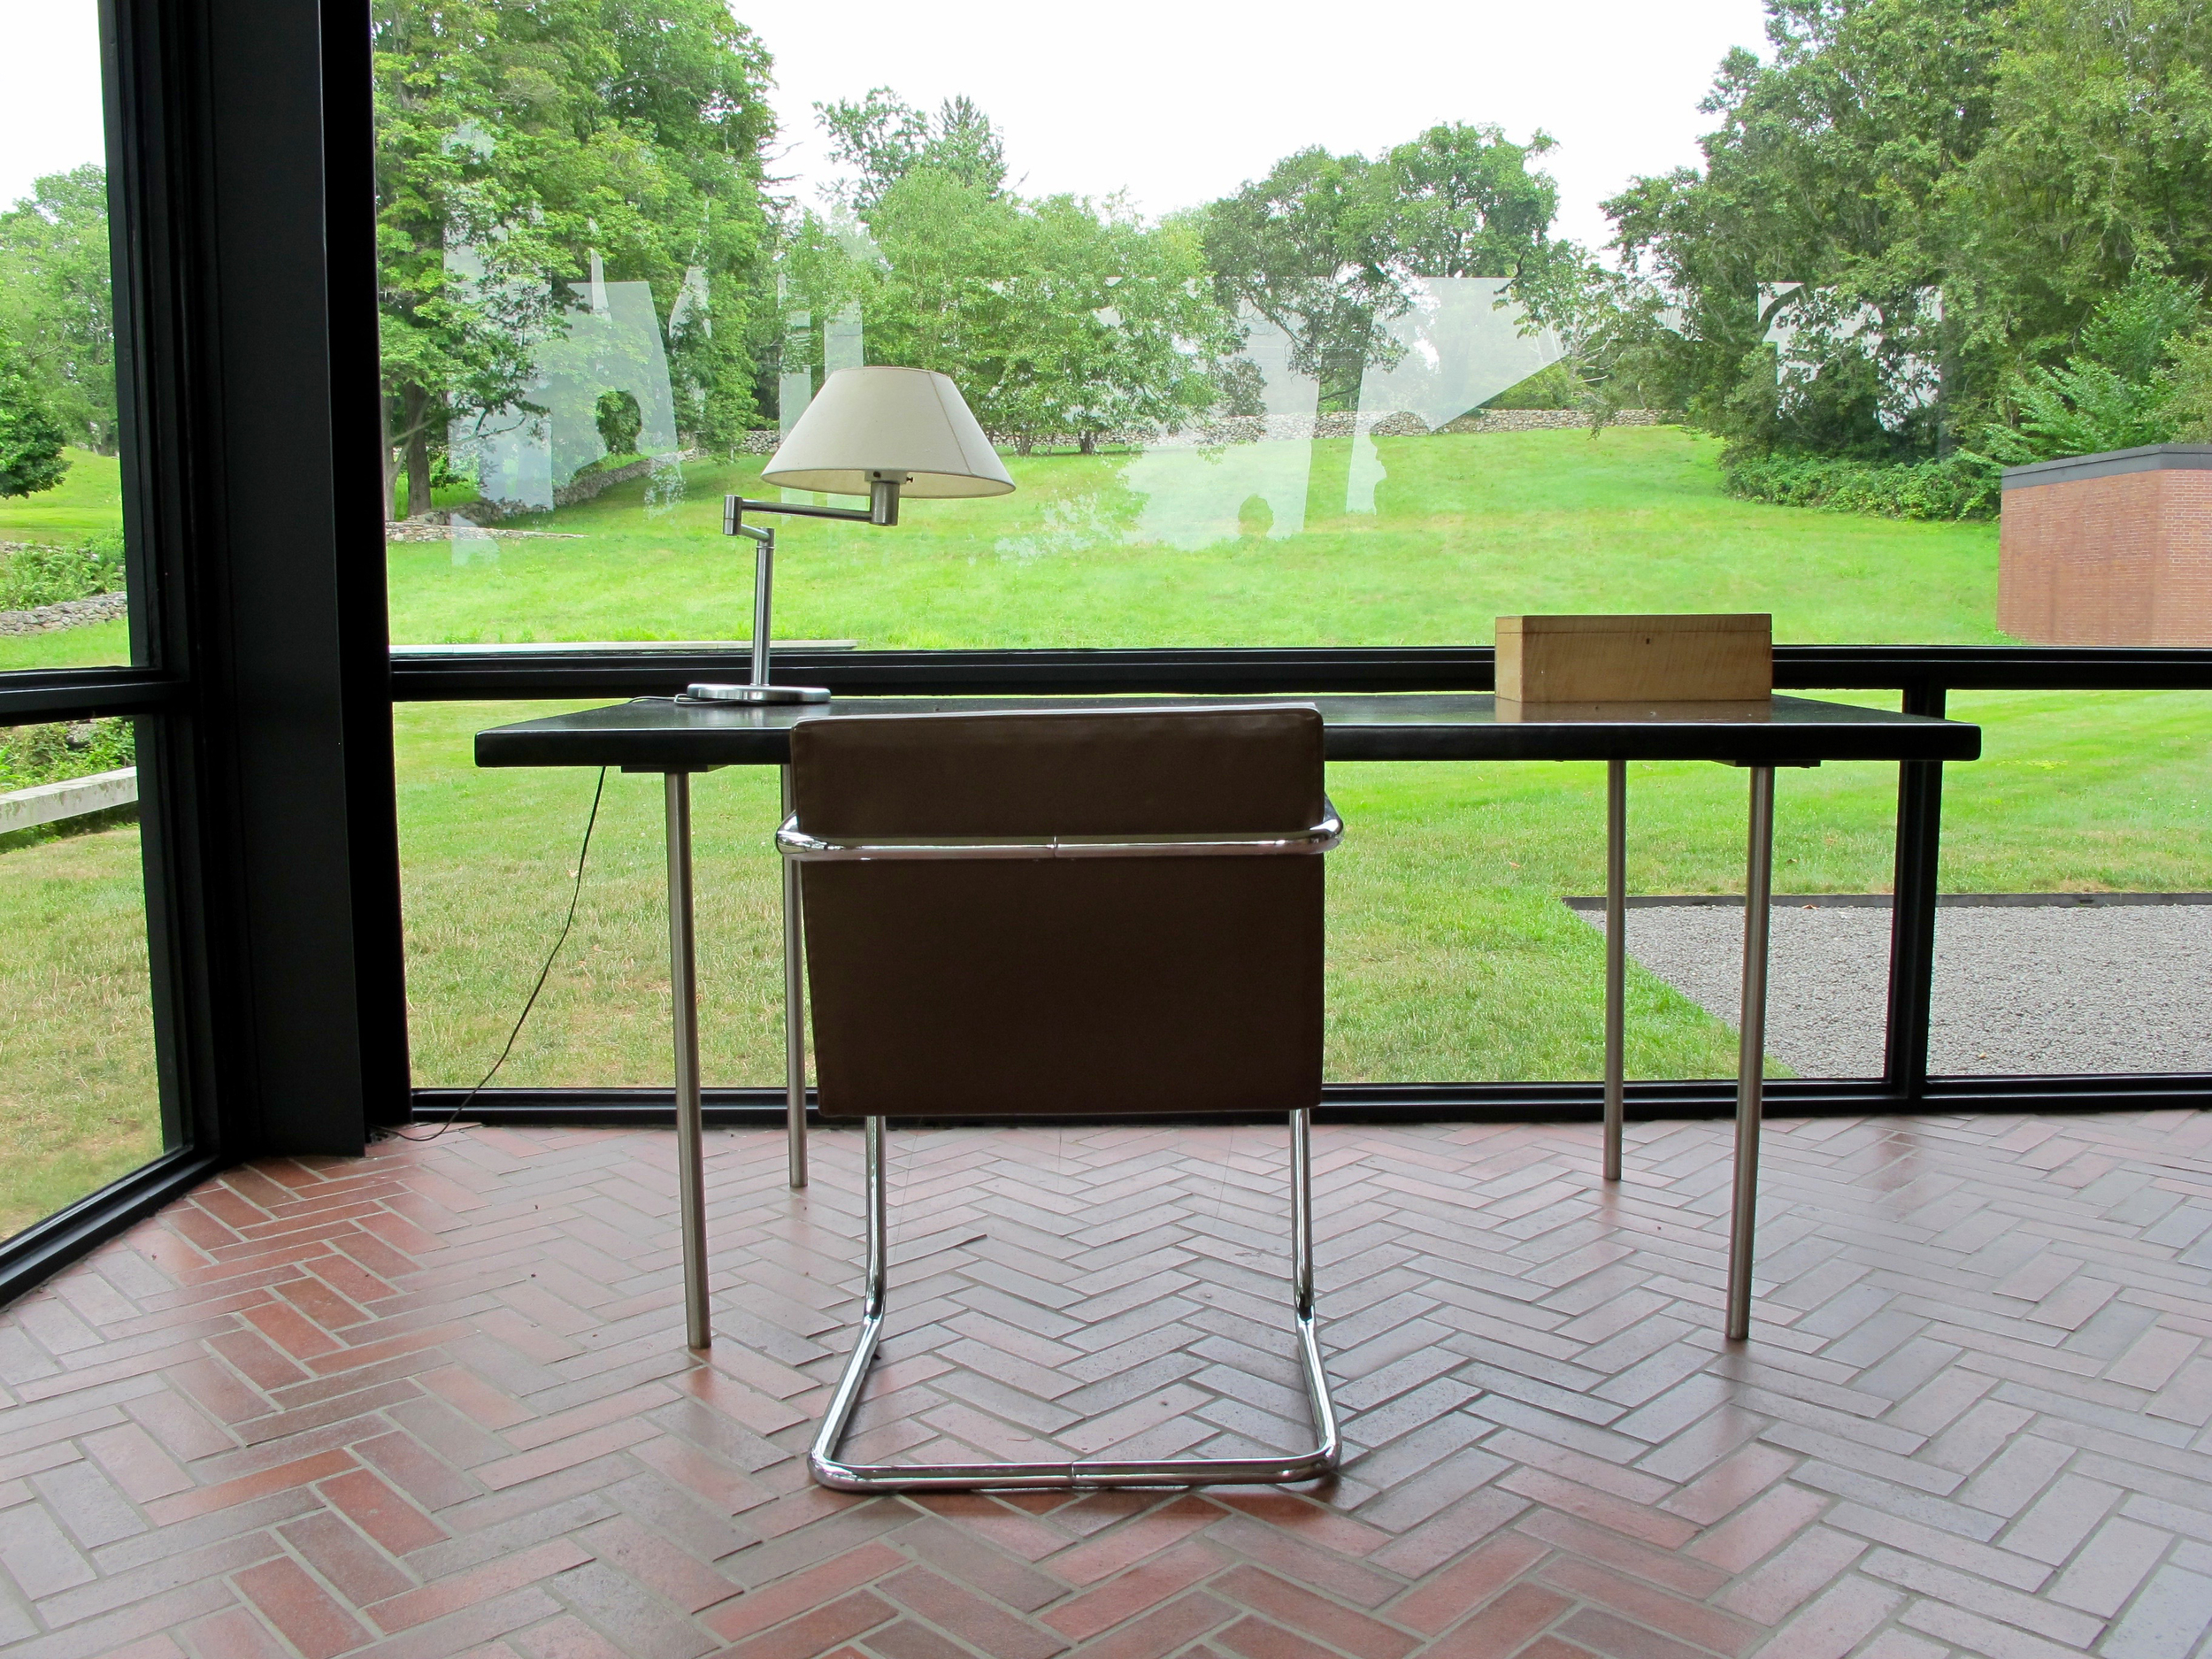 The Study:  Ludwig Mies van der Rohe Writing table, 1930; Ludwig Mies van der Rohe Brno tubular chair, 1929; Walter von Nessen Swing-arm table lamp, 1927